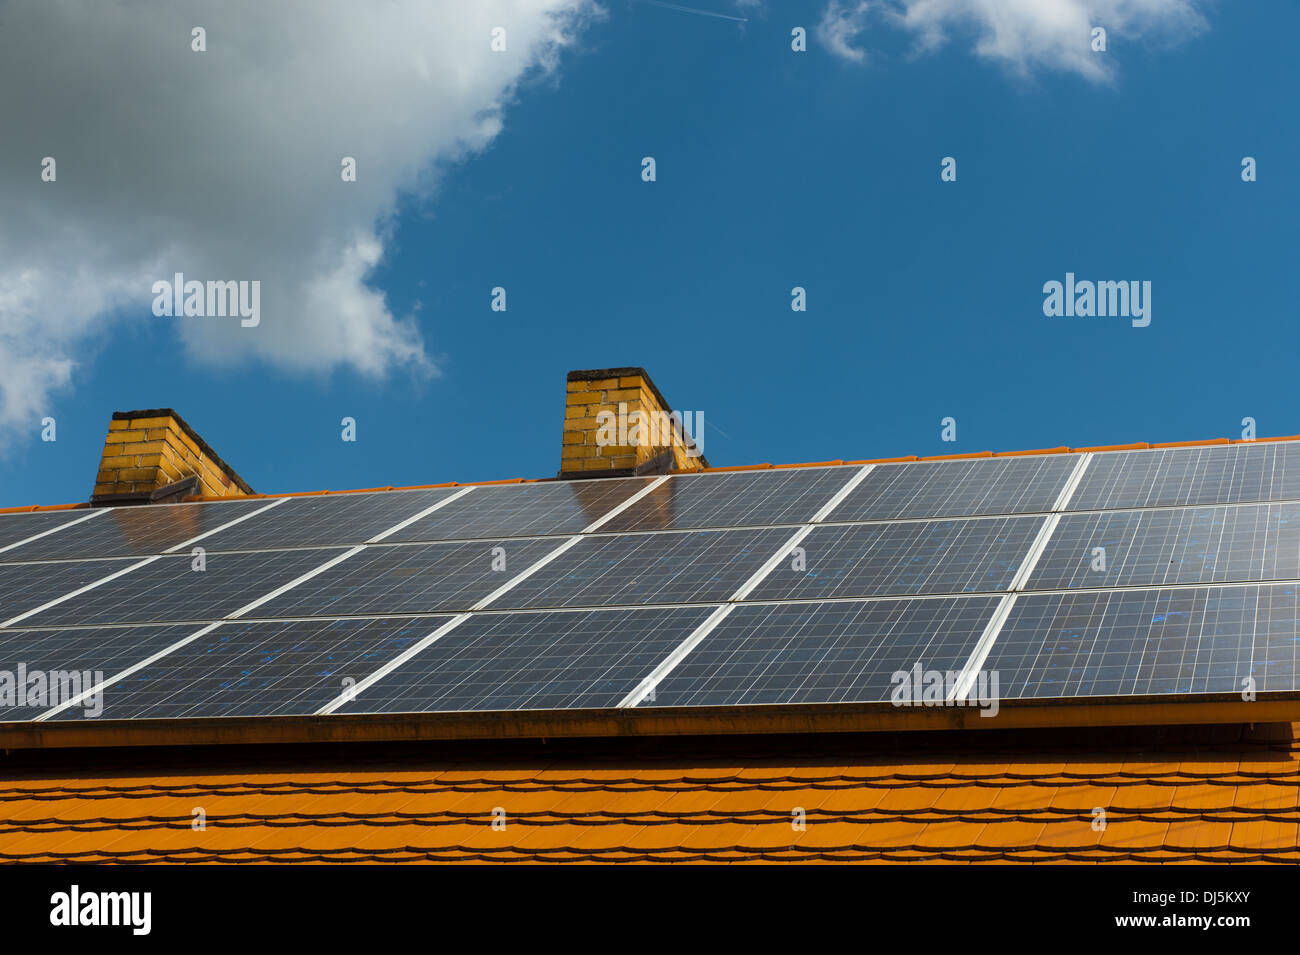 Roof of a farm house with solar panels - Stock Image